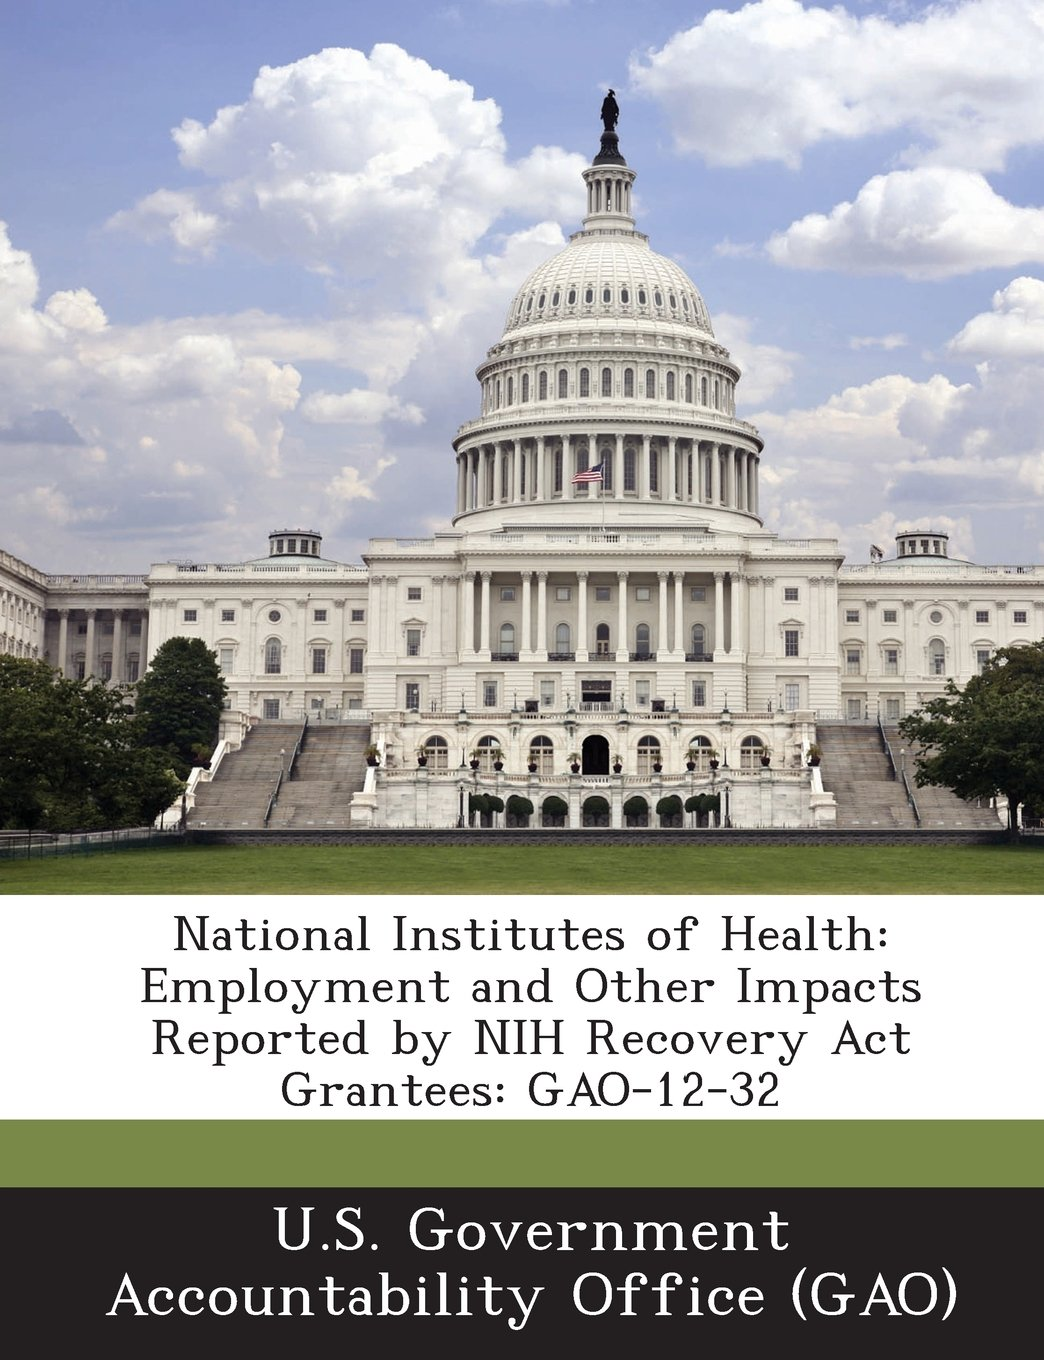 Download National Institutes of Health: Employment and Other Impacts Reported by Nih Recovery ACT Grantees: Gao-12-32 pdf